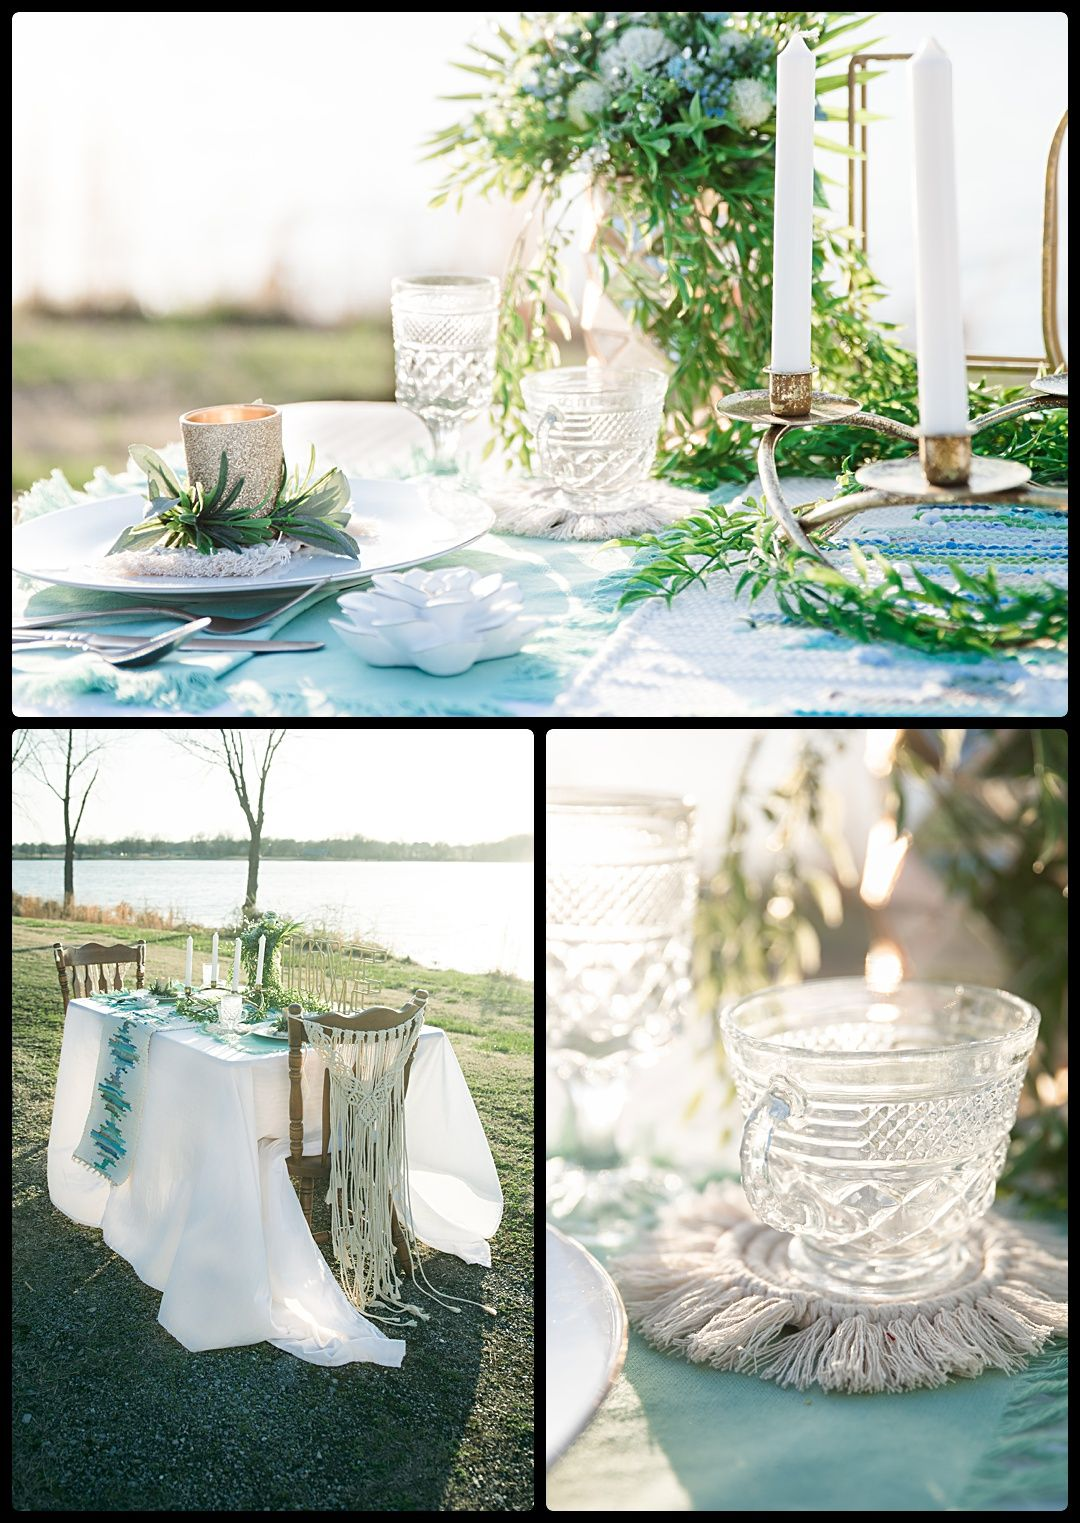 Boho wedding day details greenery with crystal dishes and gold candleholders